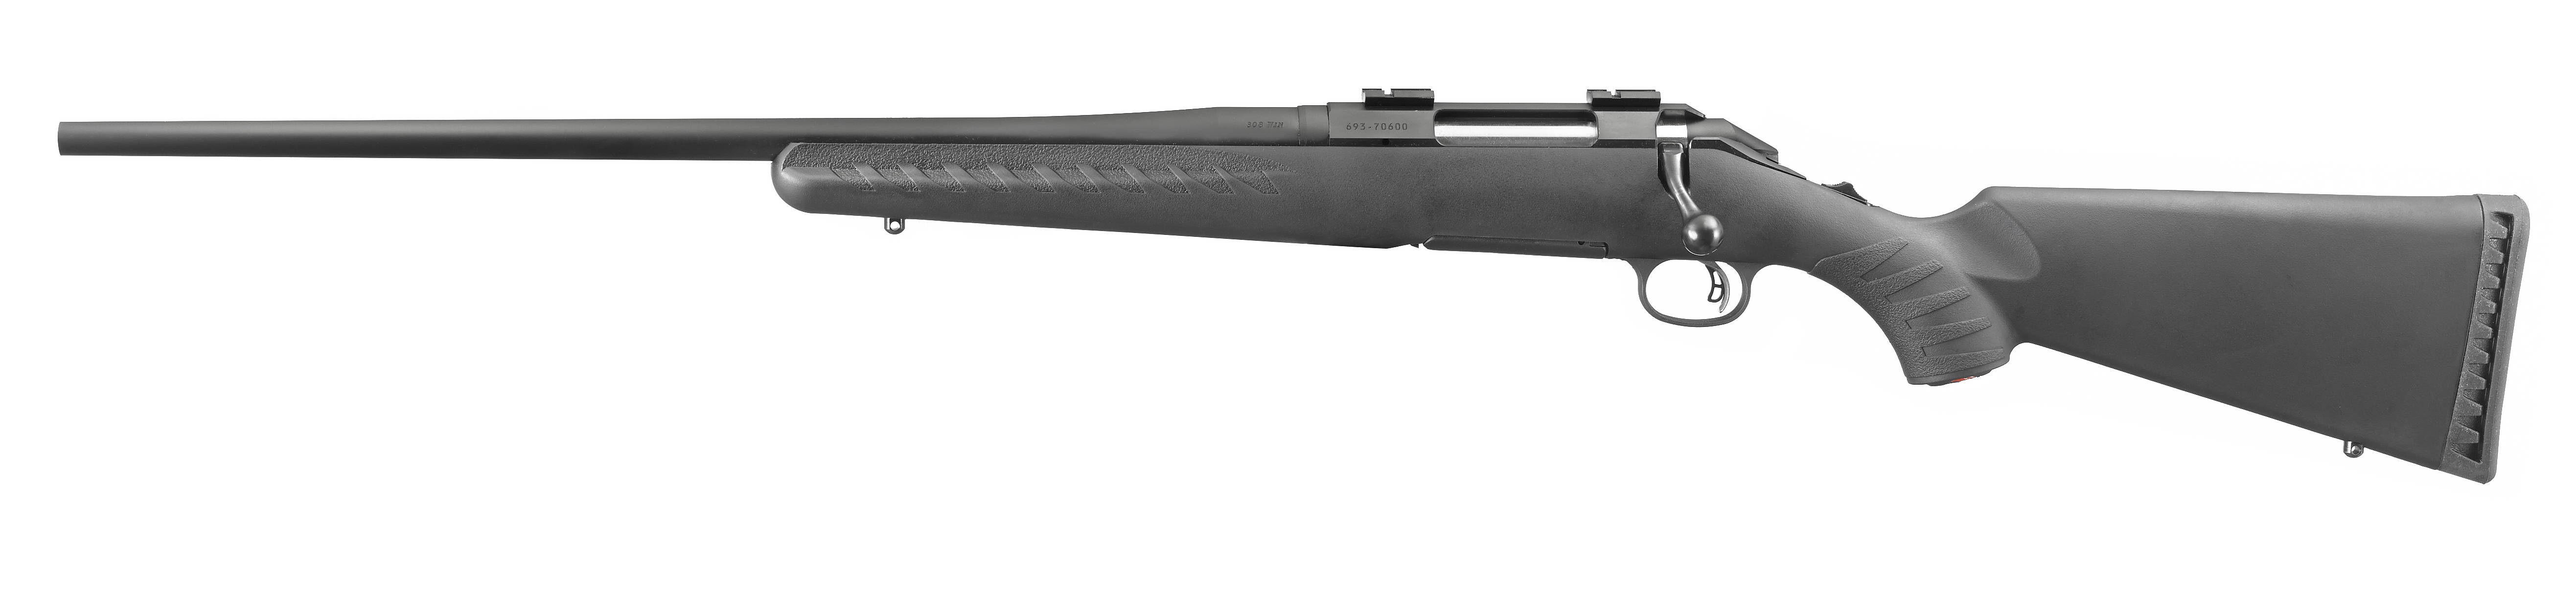 Ruger LH American and Short Barreled Ranch Rifles